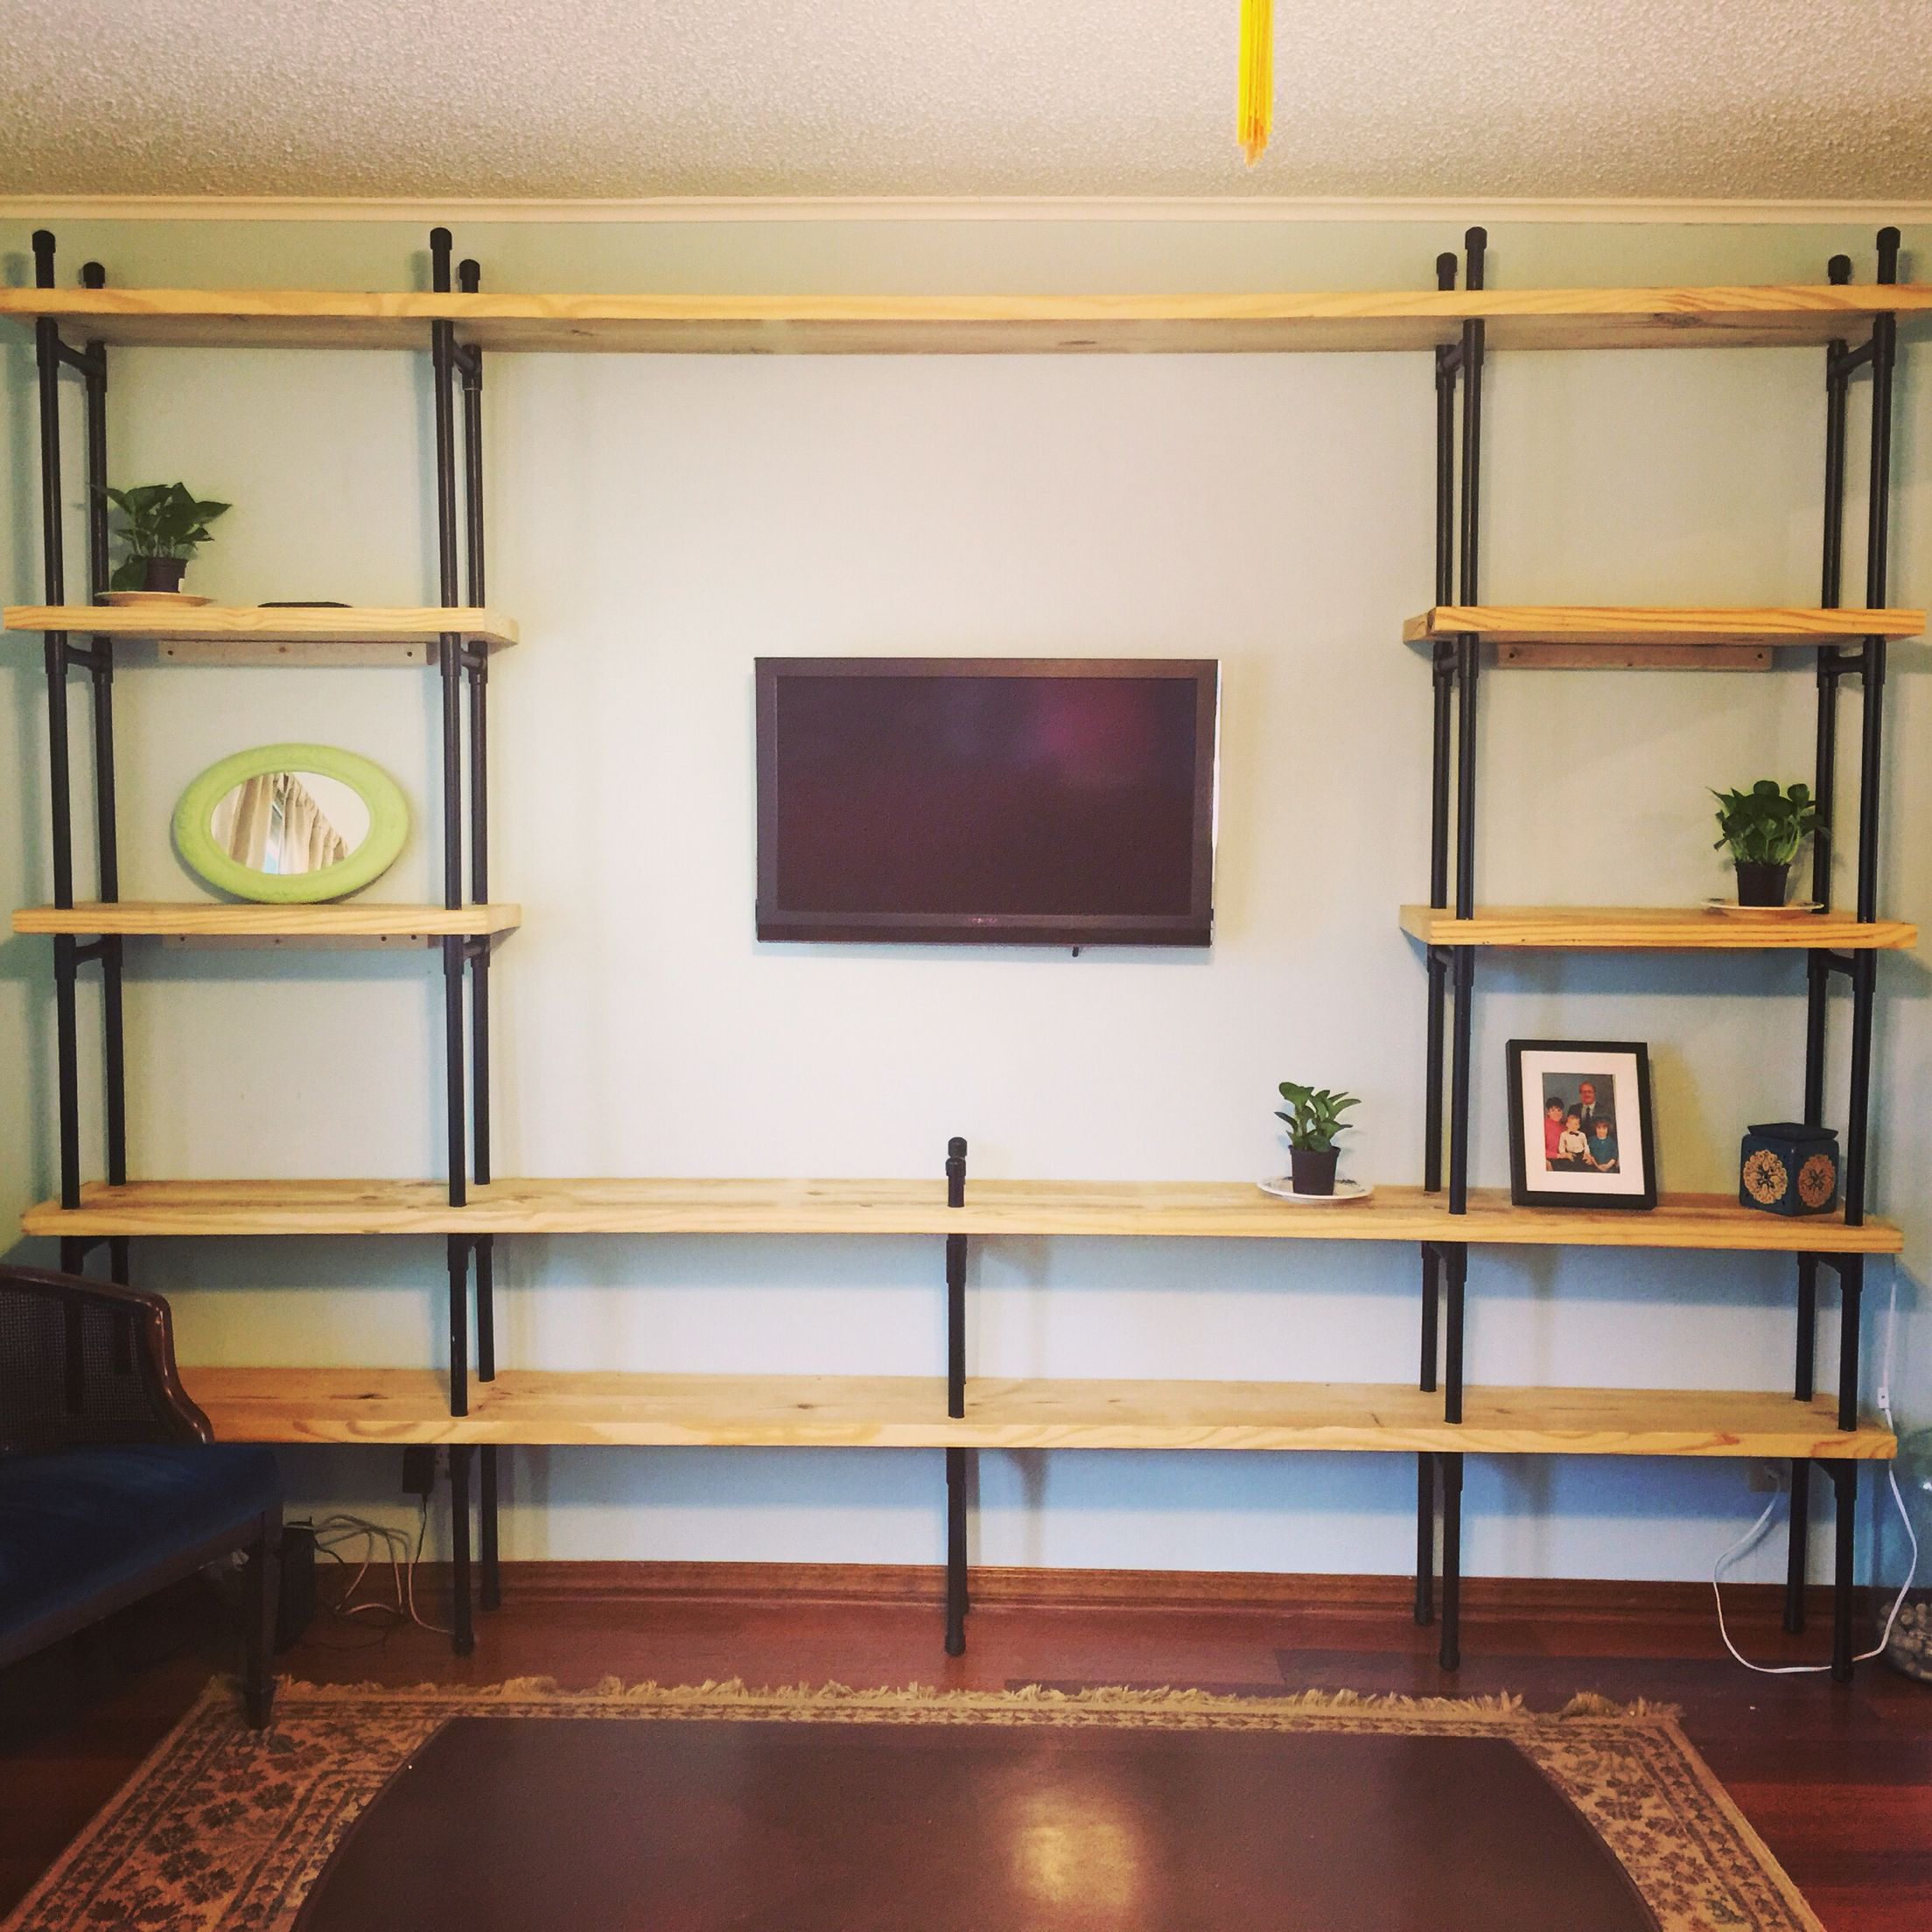 Completed pvc pipe shelves  | PVC PIPE CREATIONS | Pinte